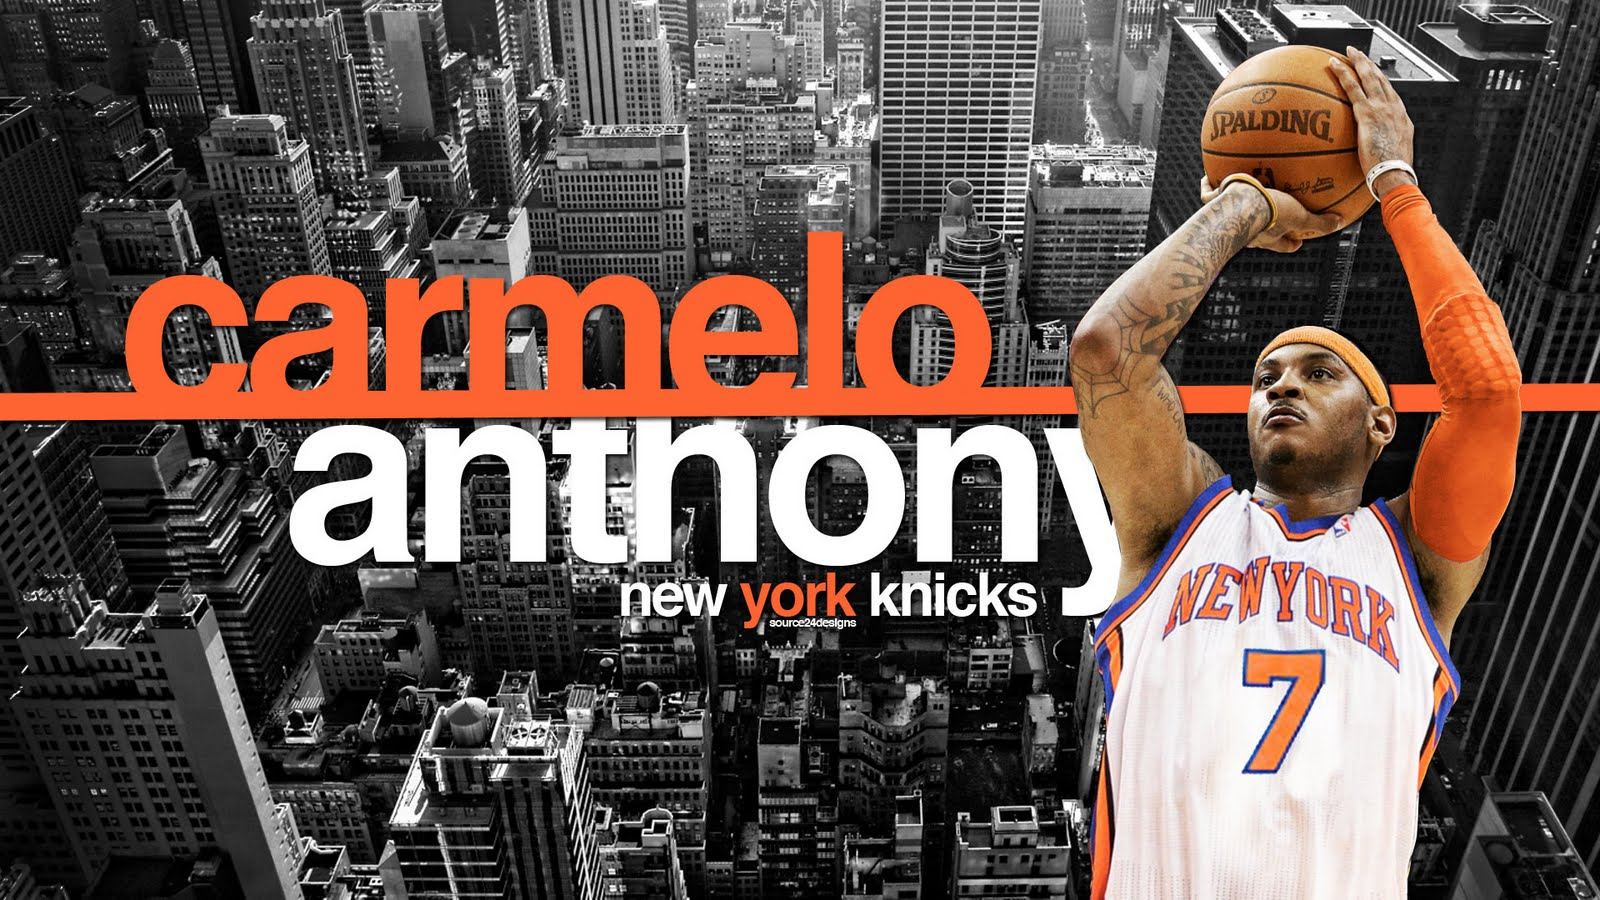 http://1.bp.blogspot.com/-AqCR0CcTRno/TbuVL4-UaVI/AAAAAAAAEhE/Q4WhIamXwlI/s1600/Carmelo-Anthony-New-York-Knicks-Widescreen-Wallpaper.jpg